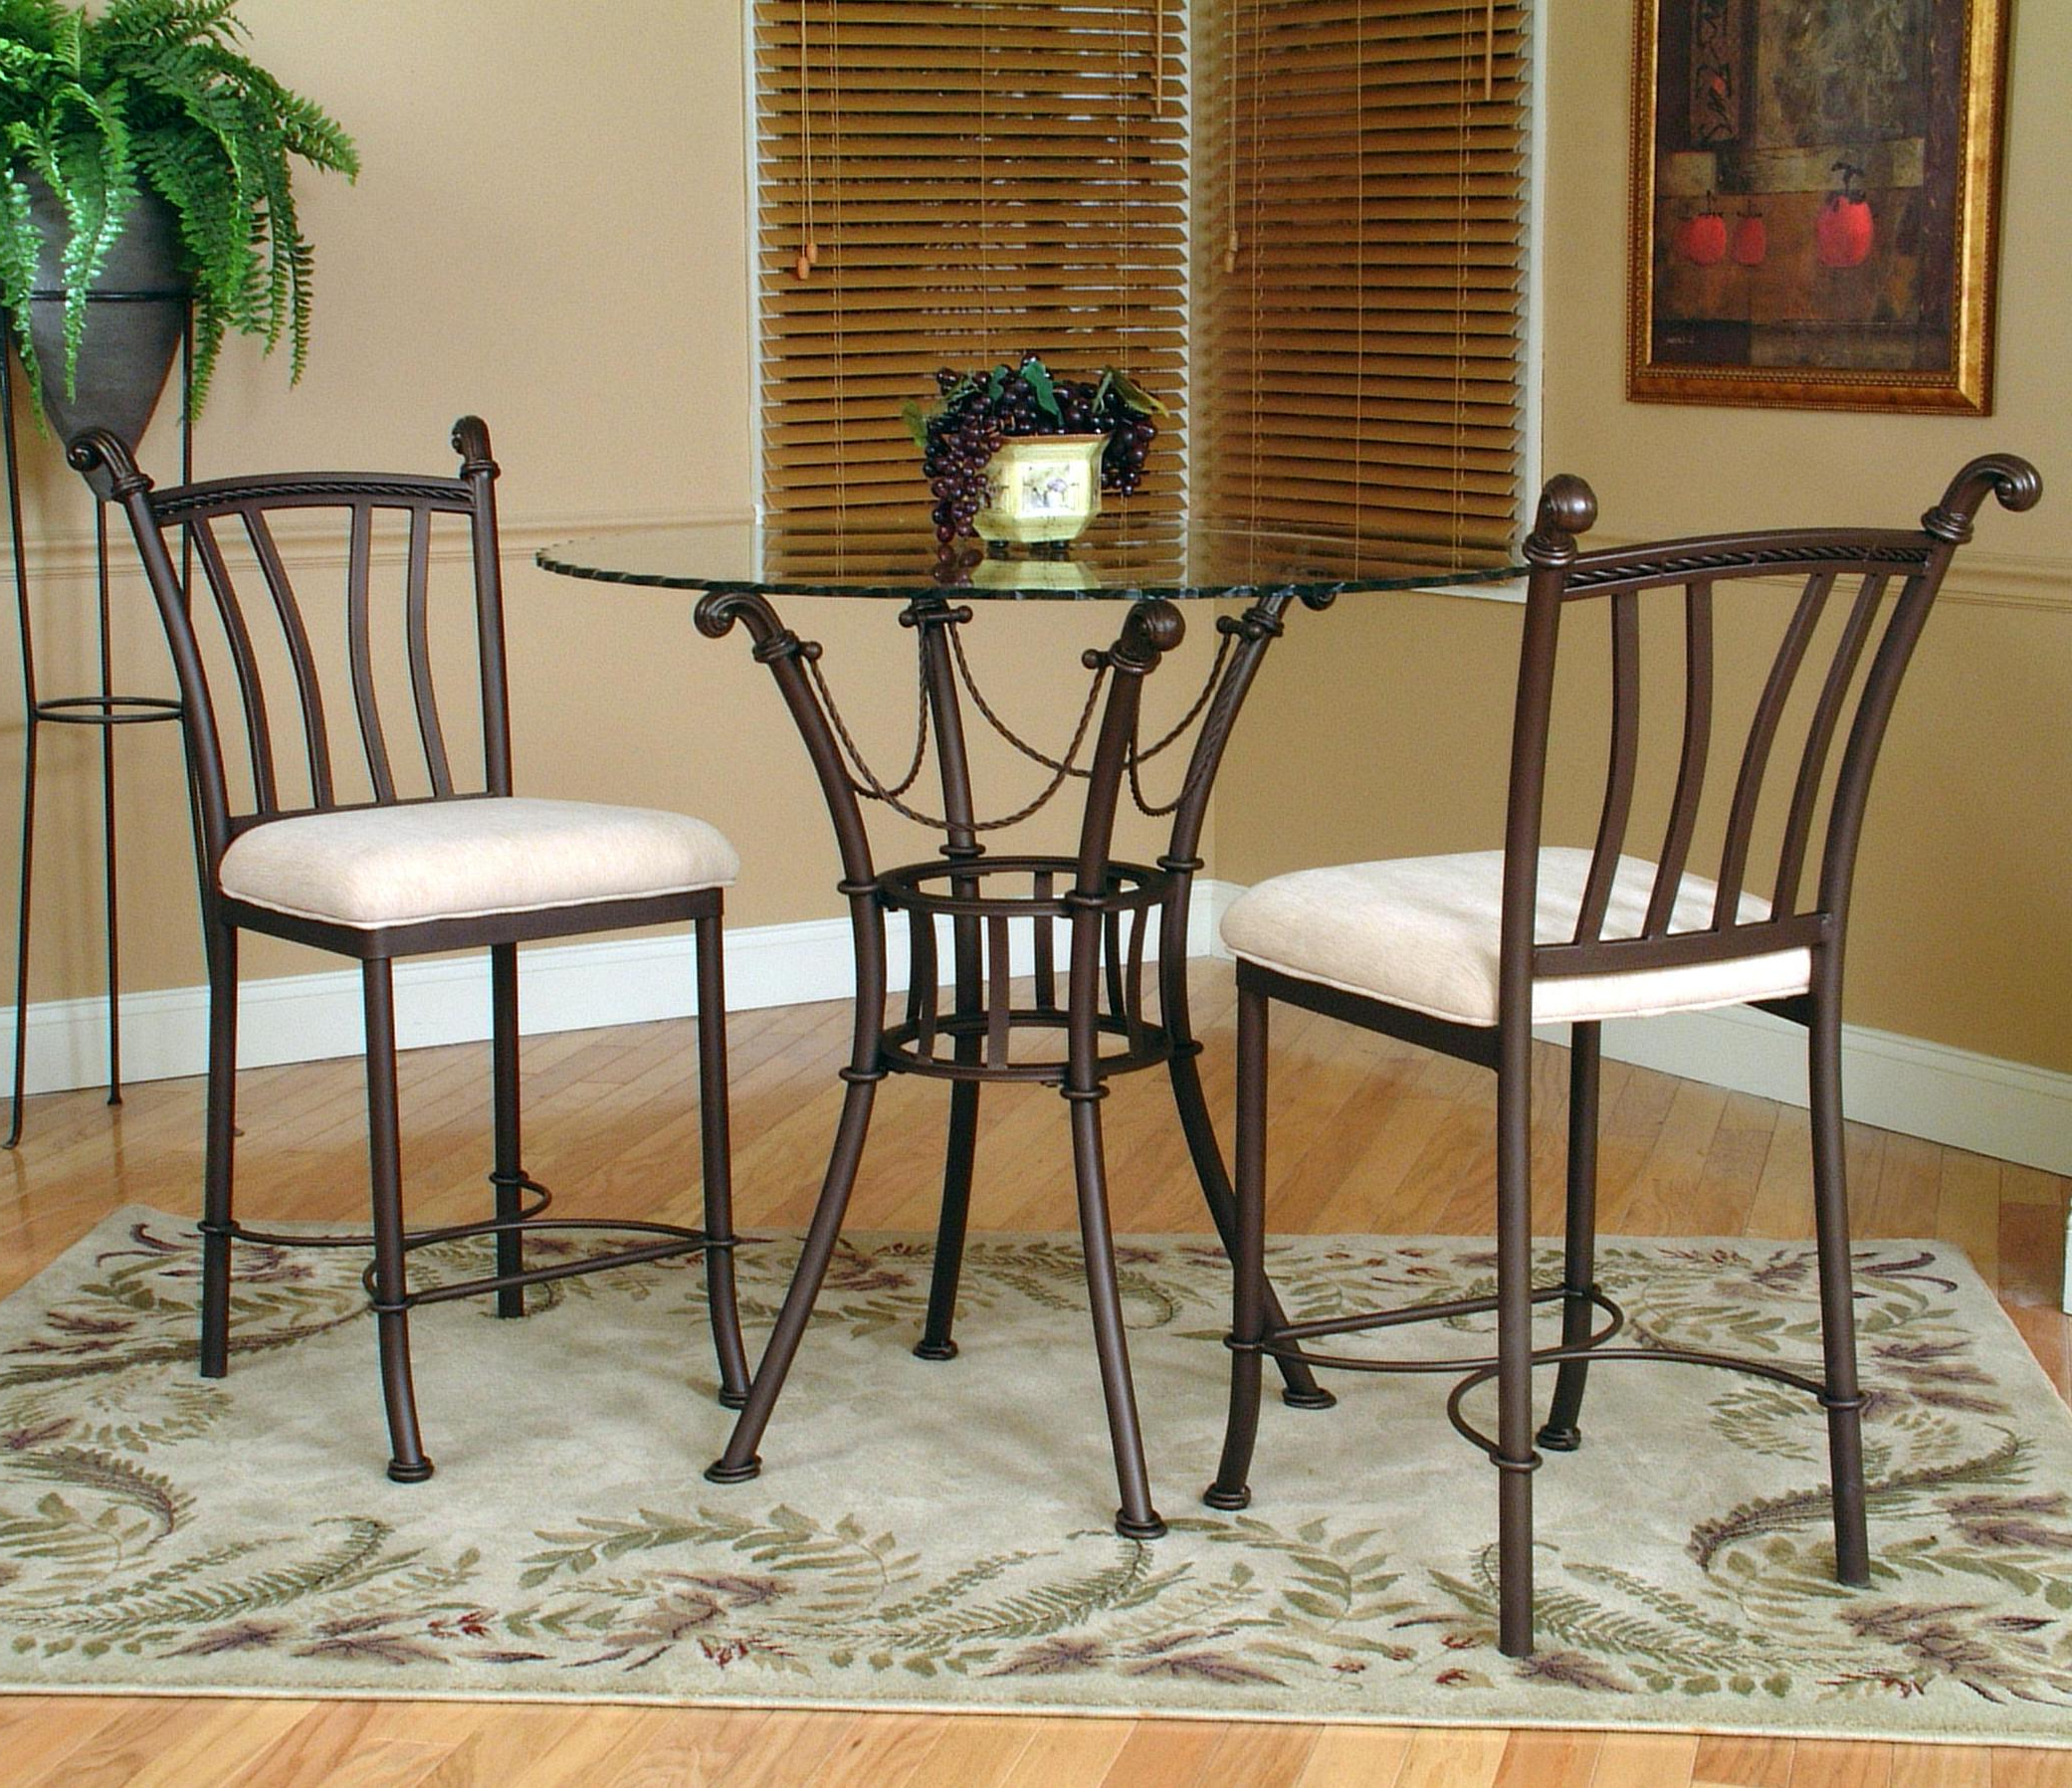 3 Piece Dining Sets In Recent Cramco, Inc Denali 3 Piece Counter Height Glass Table And Chair (View 21 of 25)